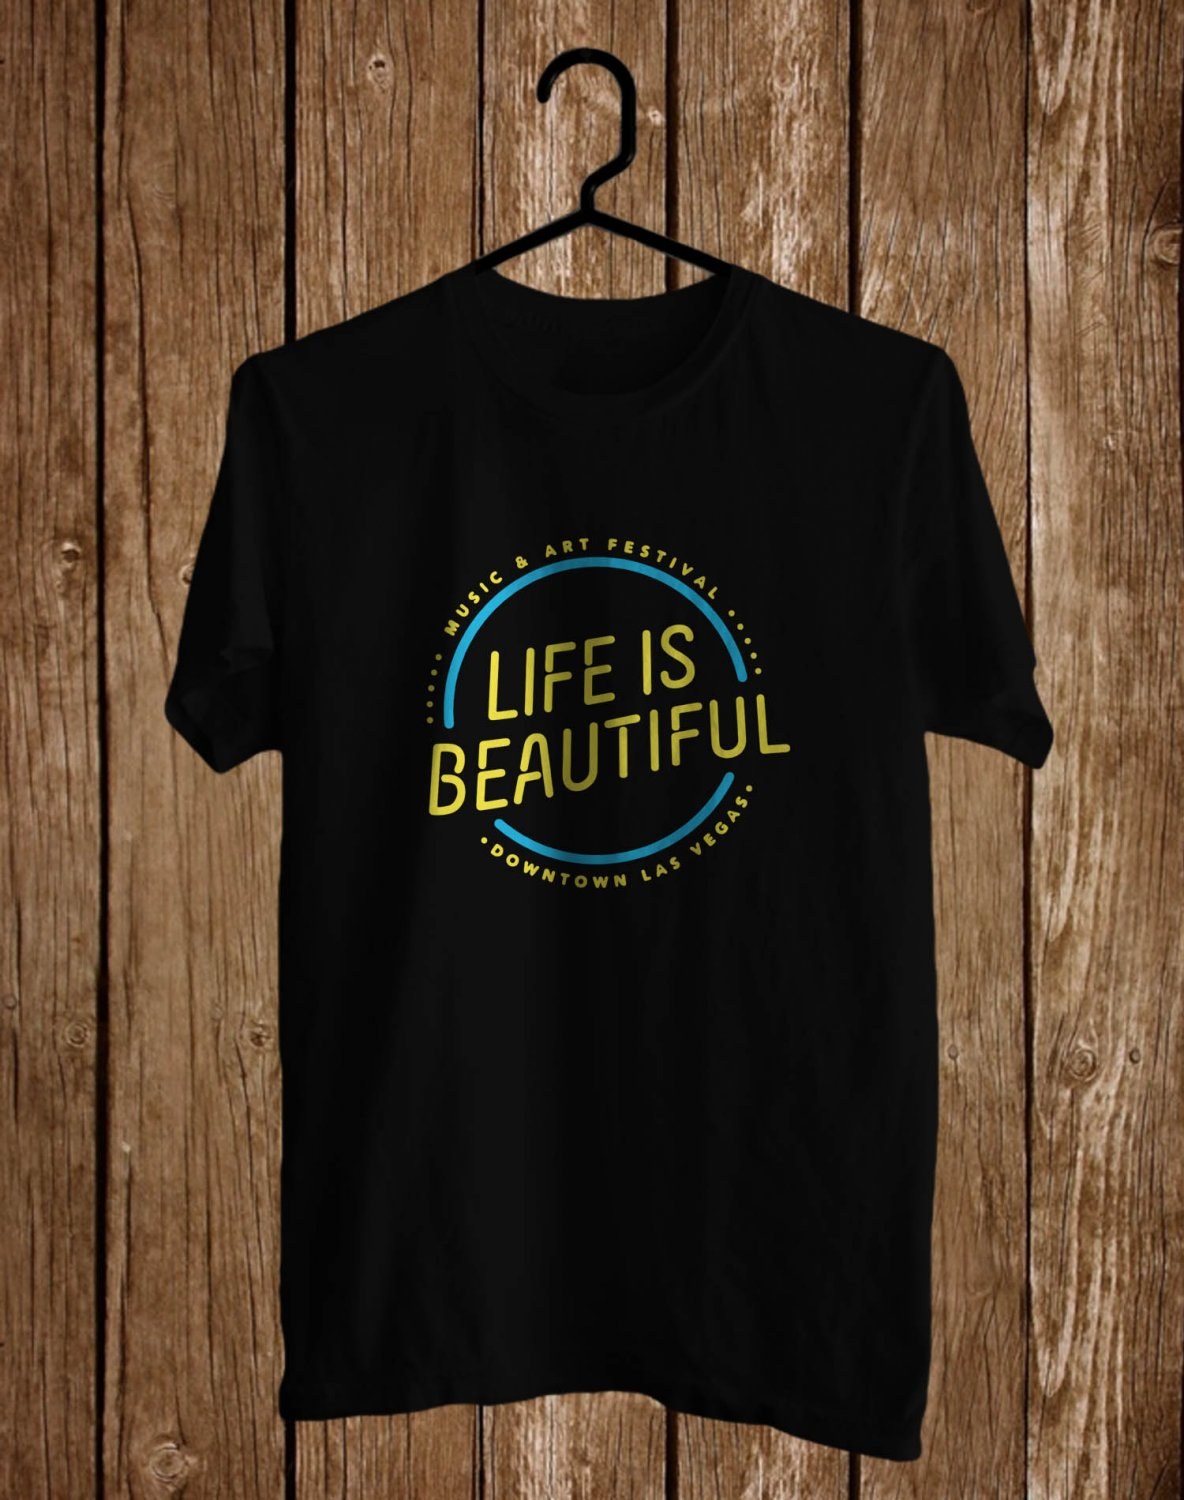 Life of Beautiful Music Festival Logo Black Tee's Front Side by Complexart